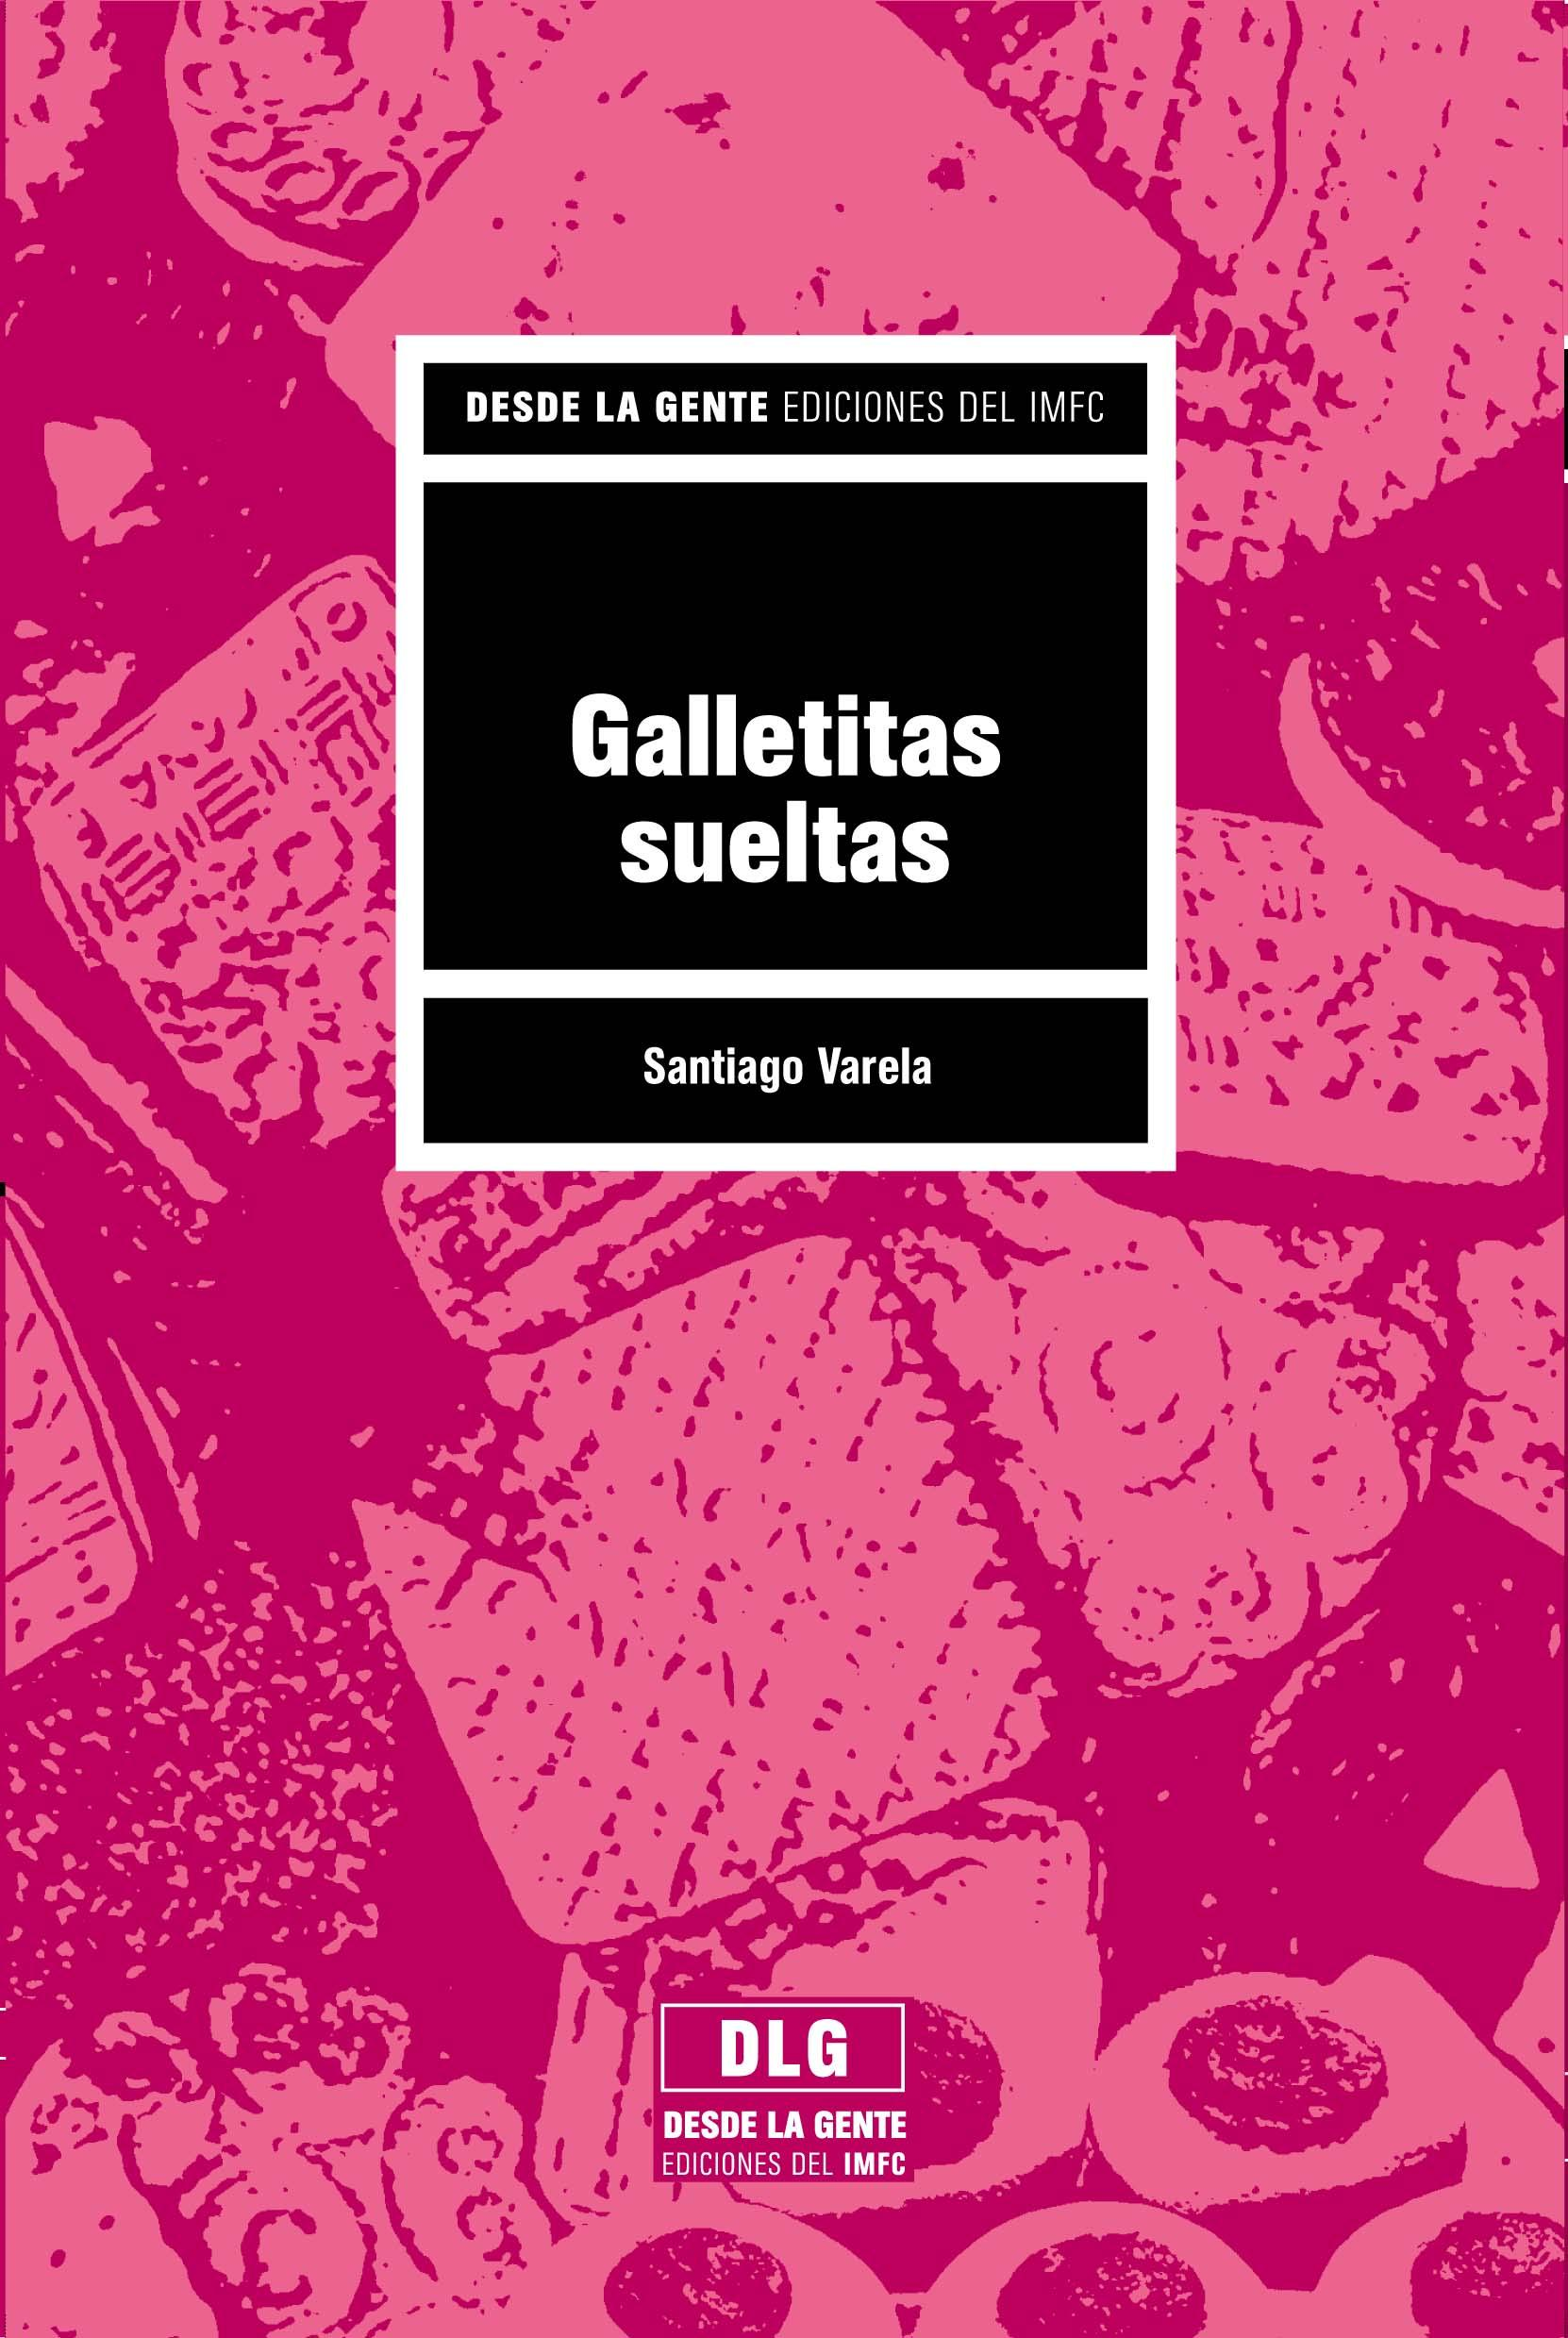 Galletitas sueltas